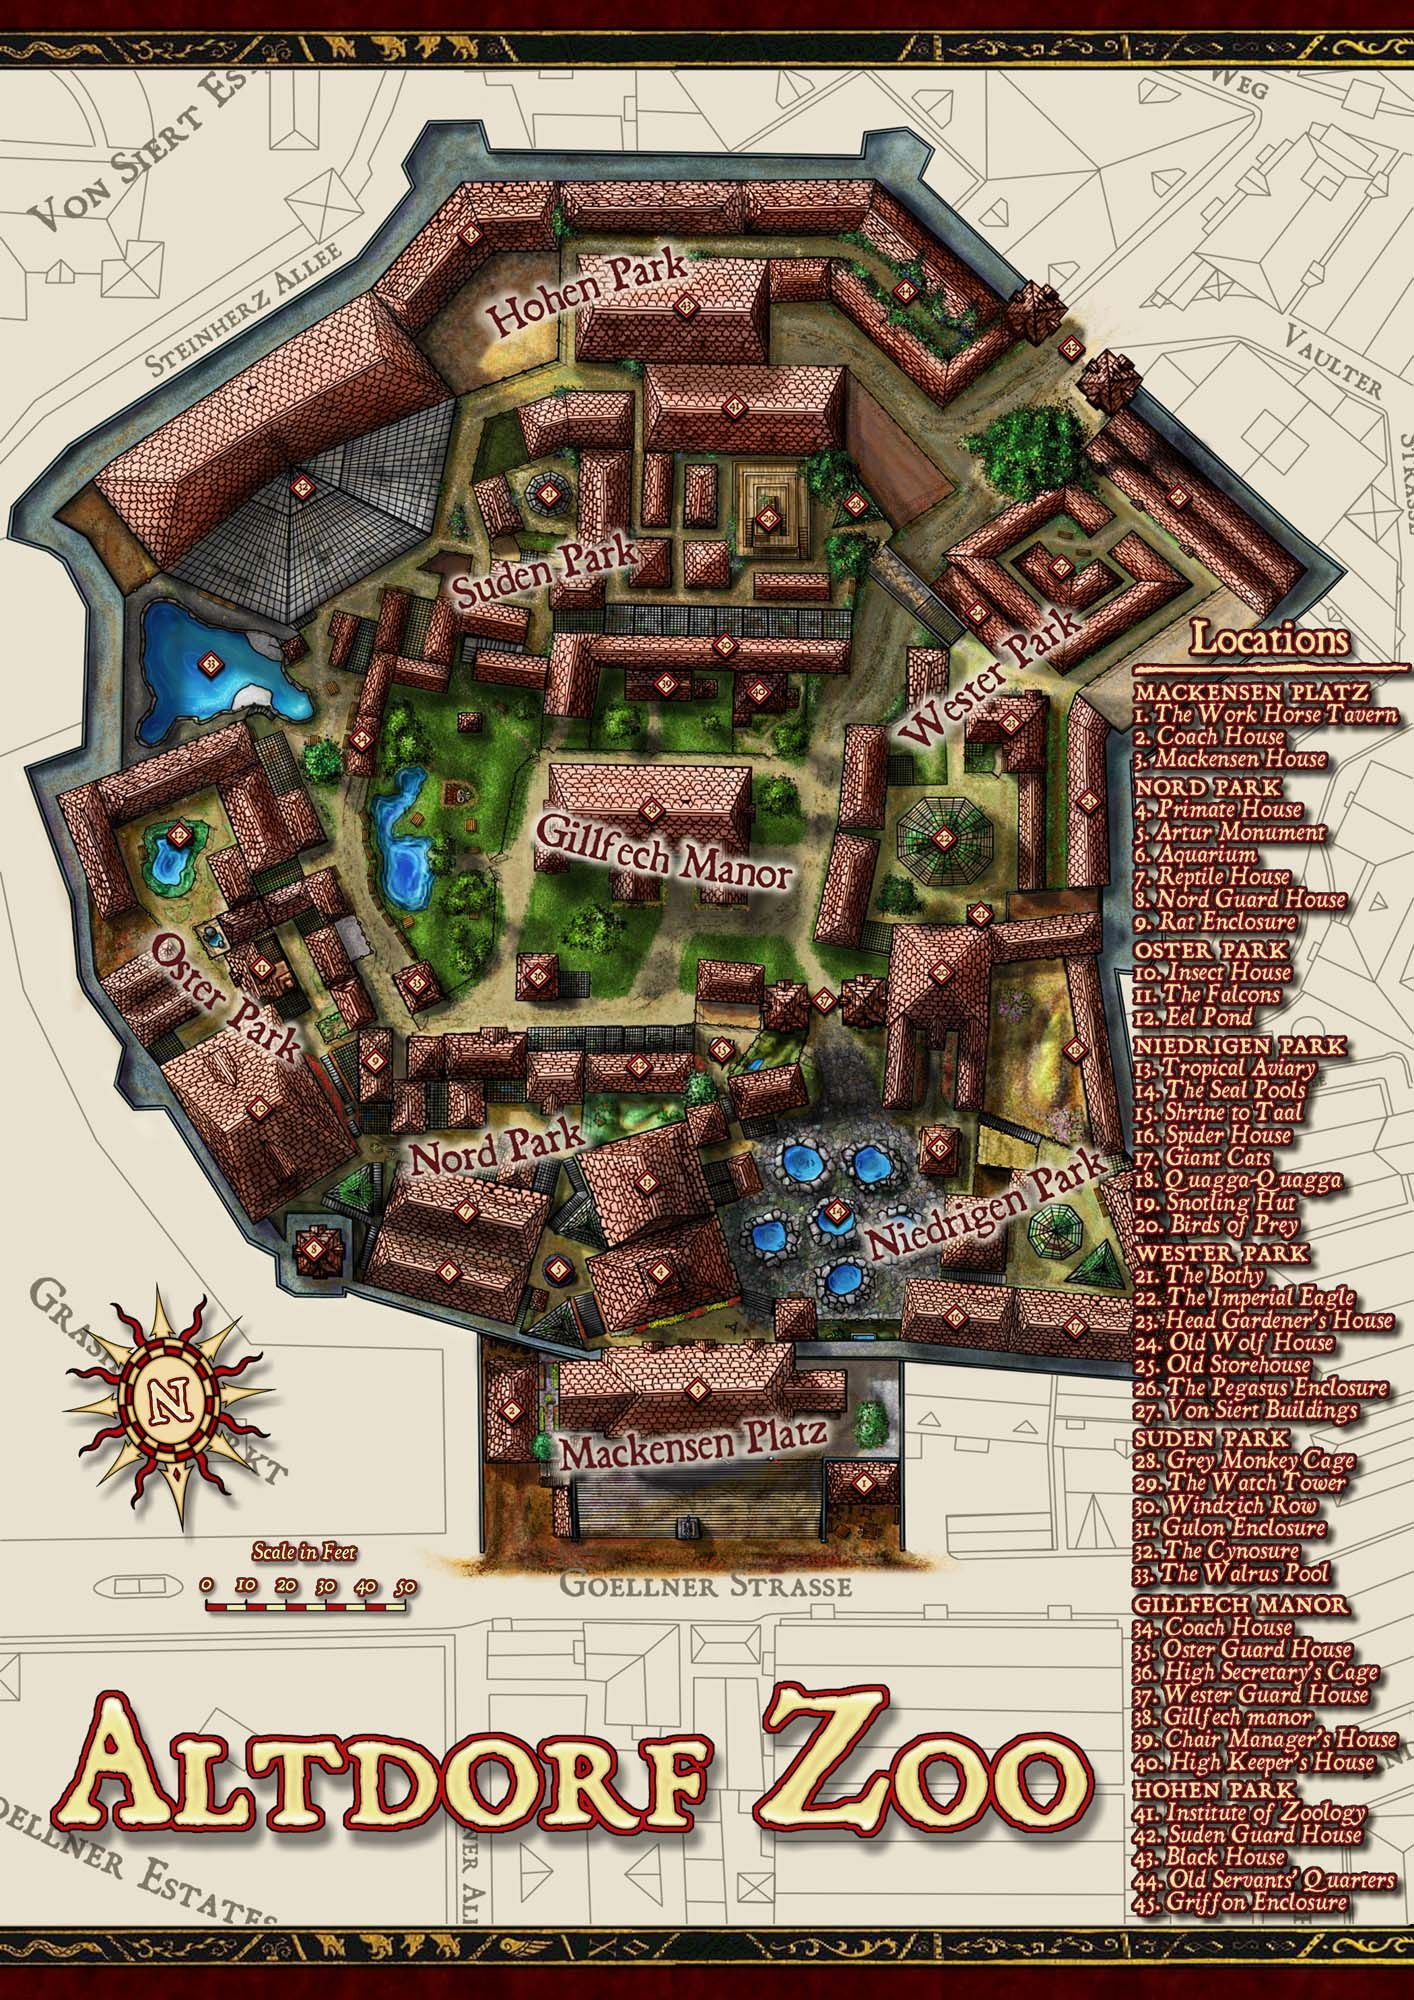 Pin by Micah Shlauter on Gaming Maps | Fantasy map, Fantasy map